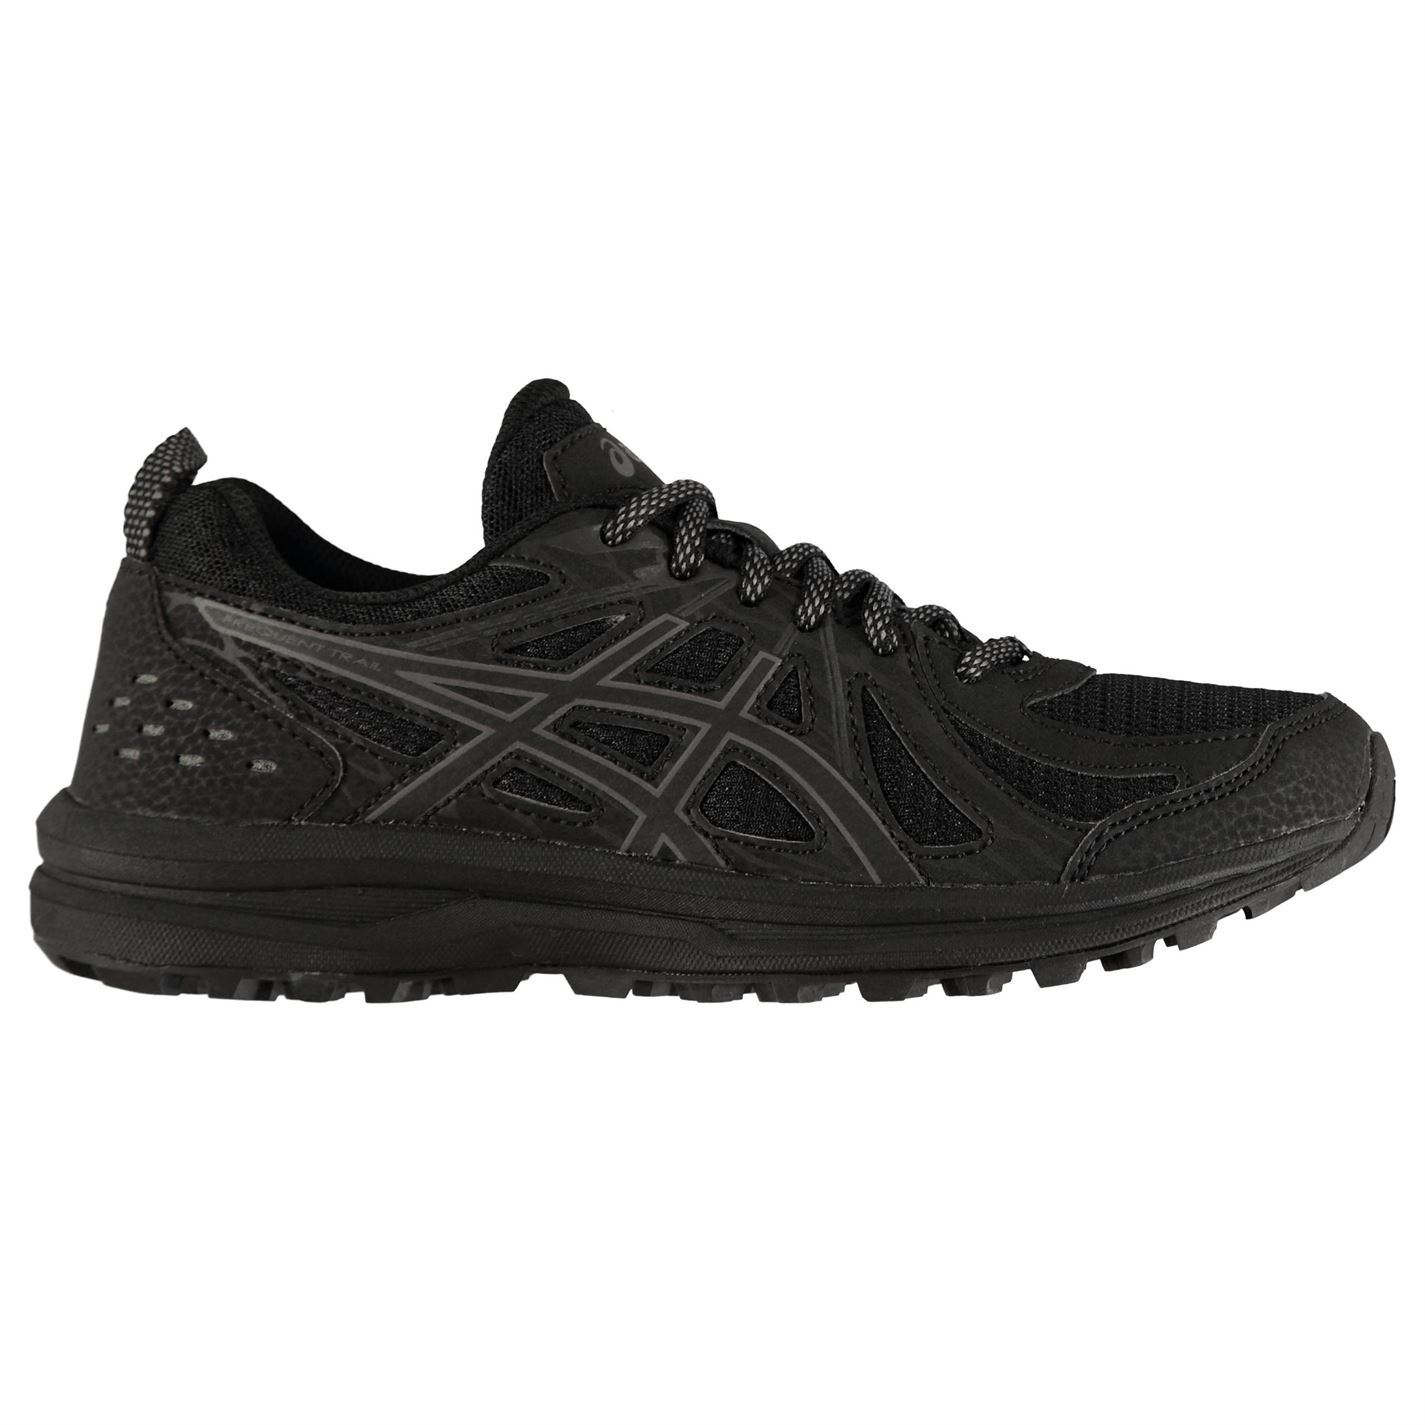 Asics Frequent XT Trail Running Shoes Womens Jogging